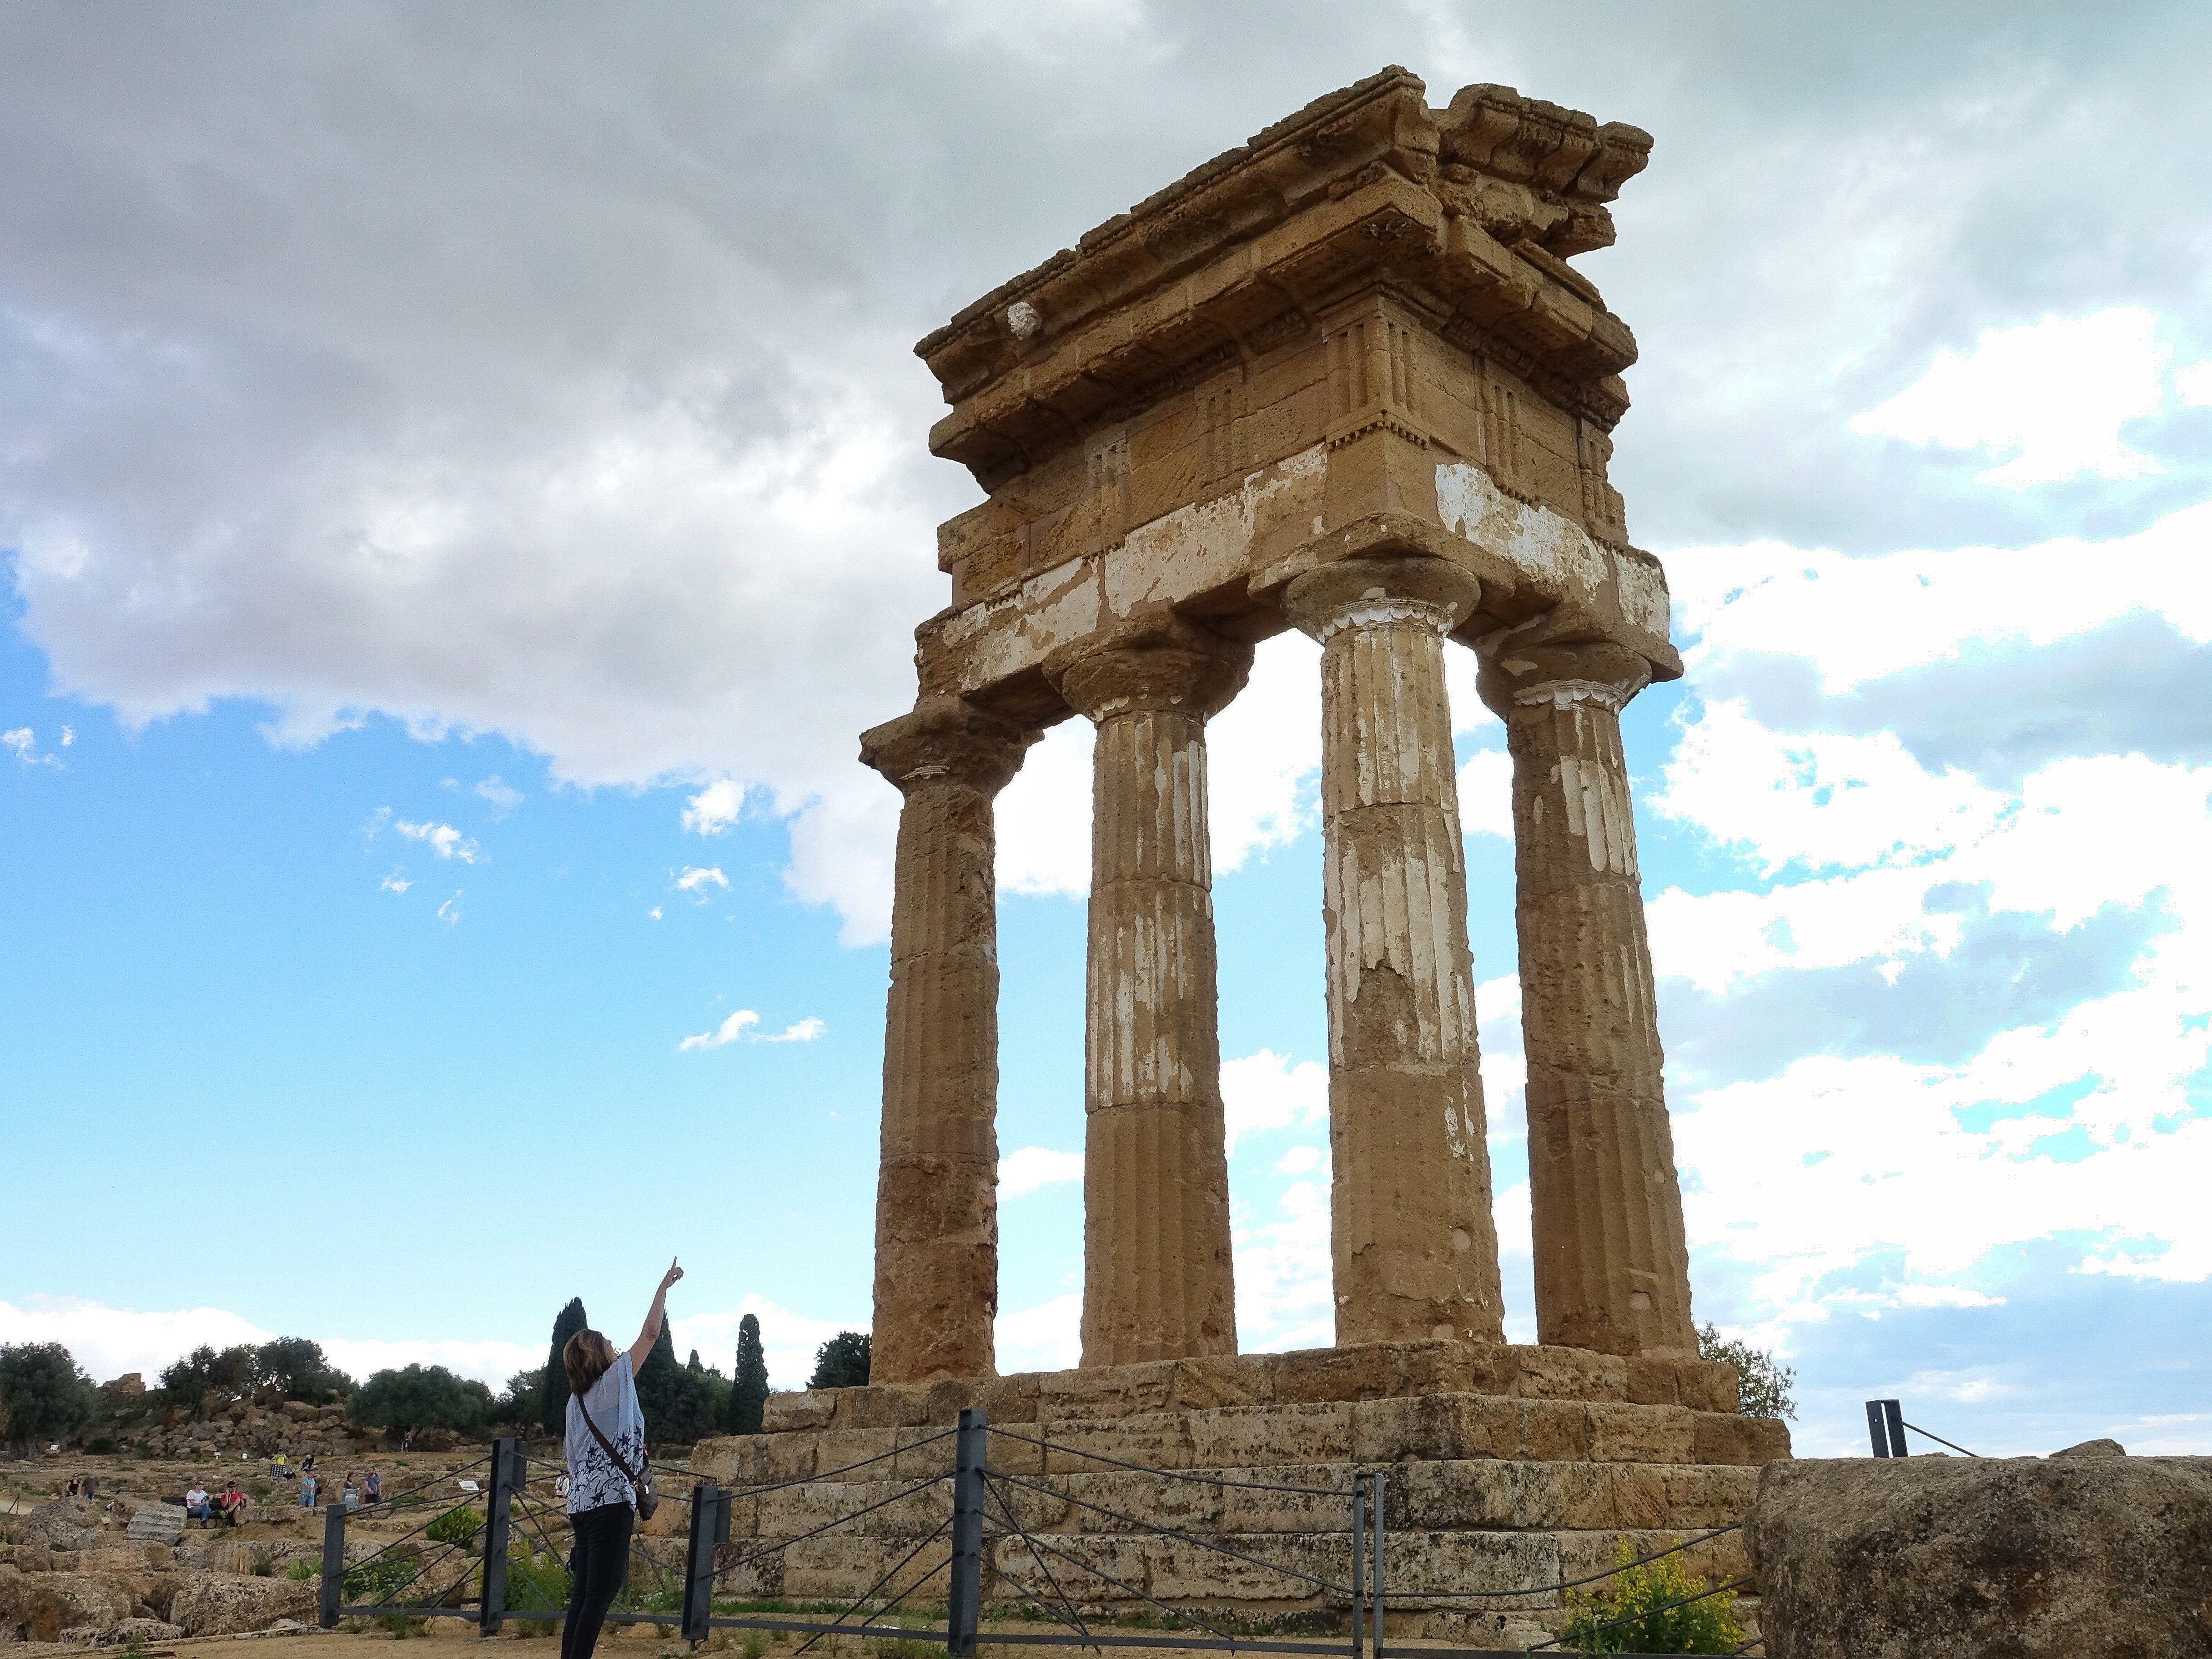 Temple of Dioscuri